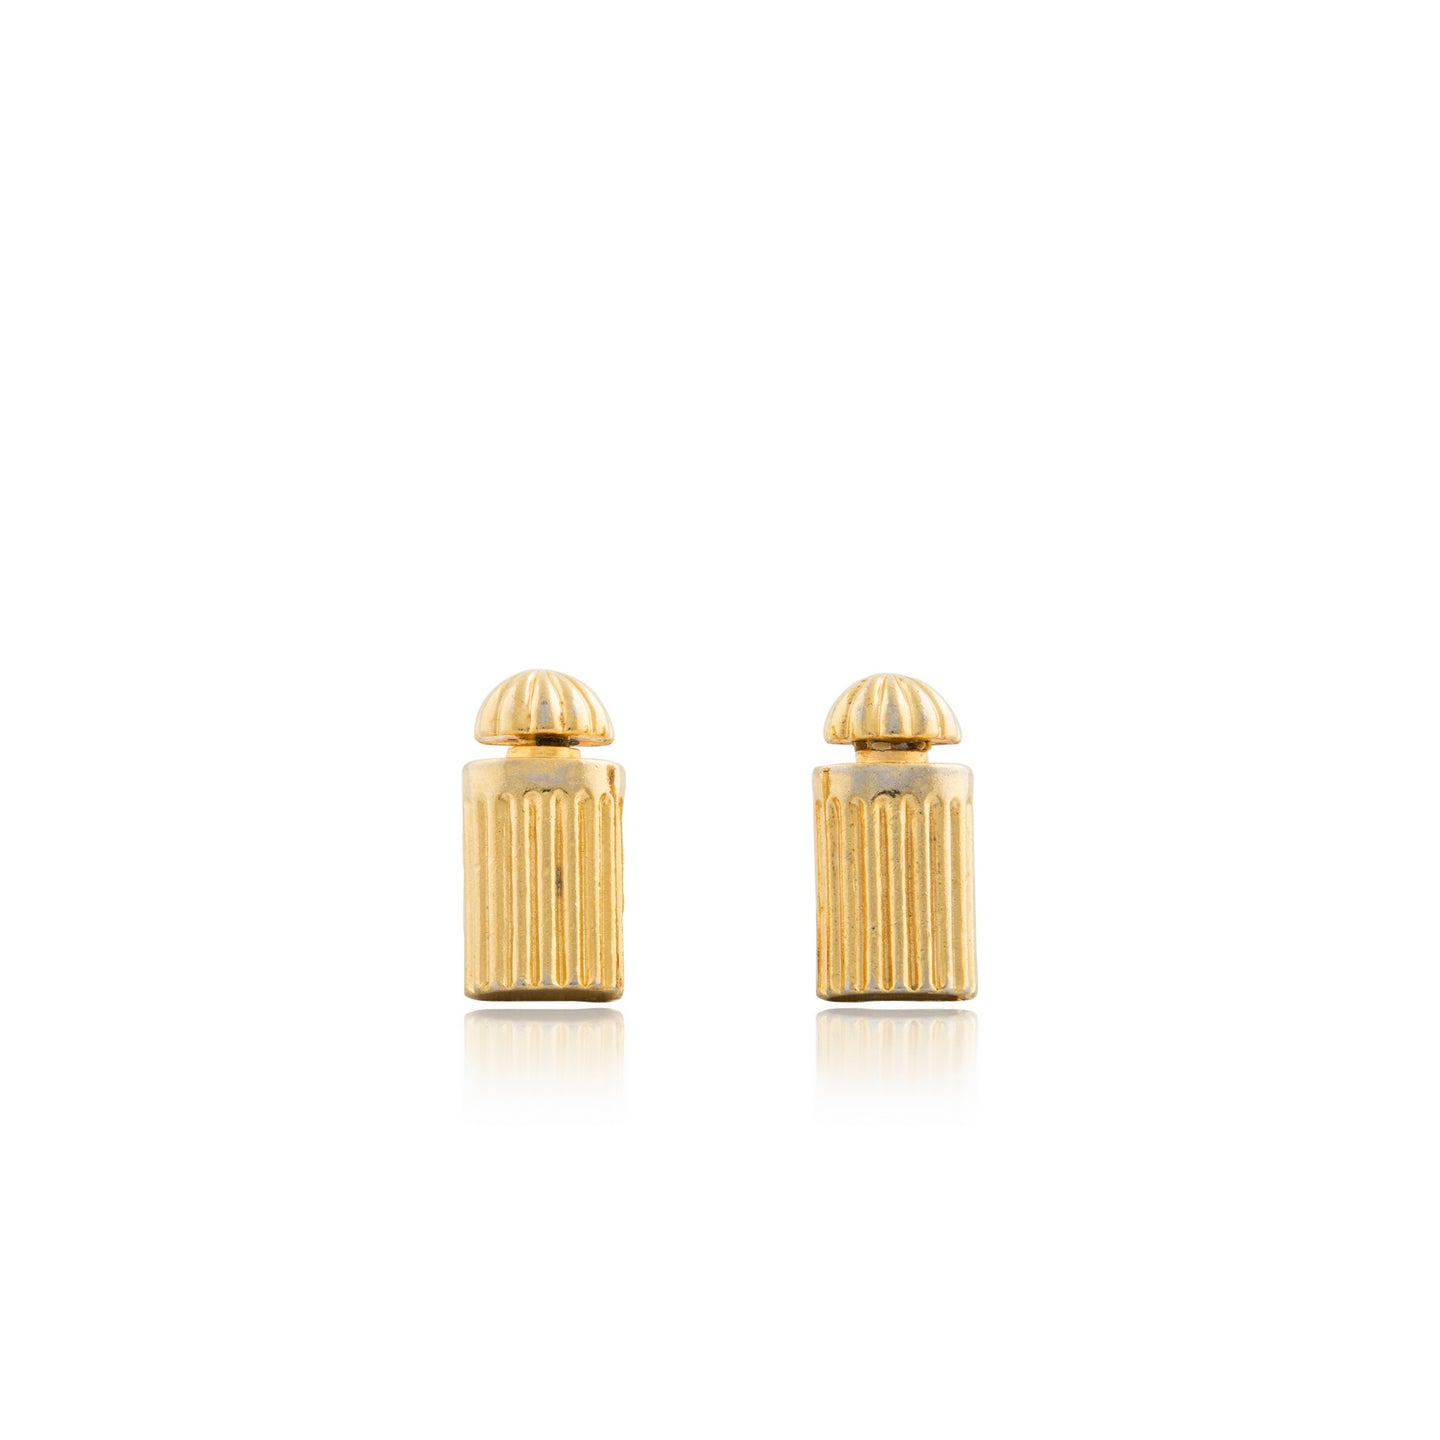 Vintage Balenciaga Small Perfume Bottle Earrings